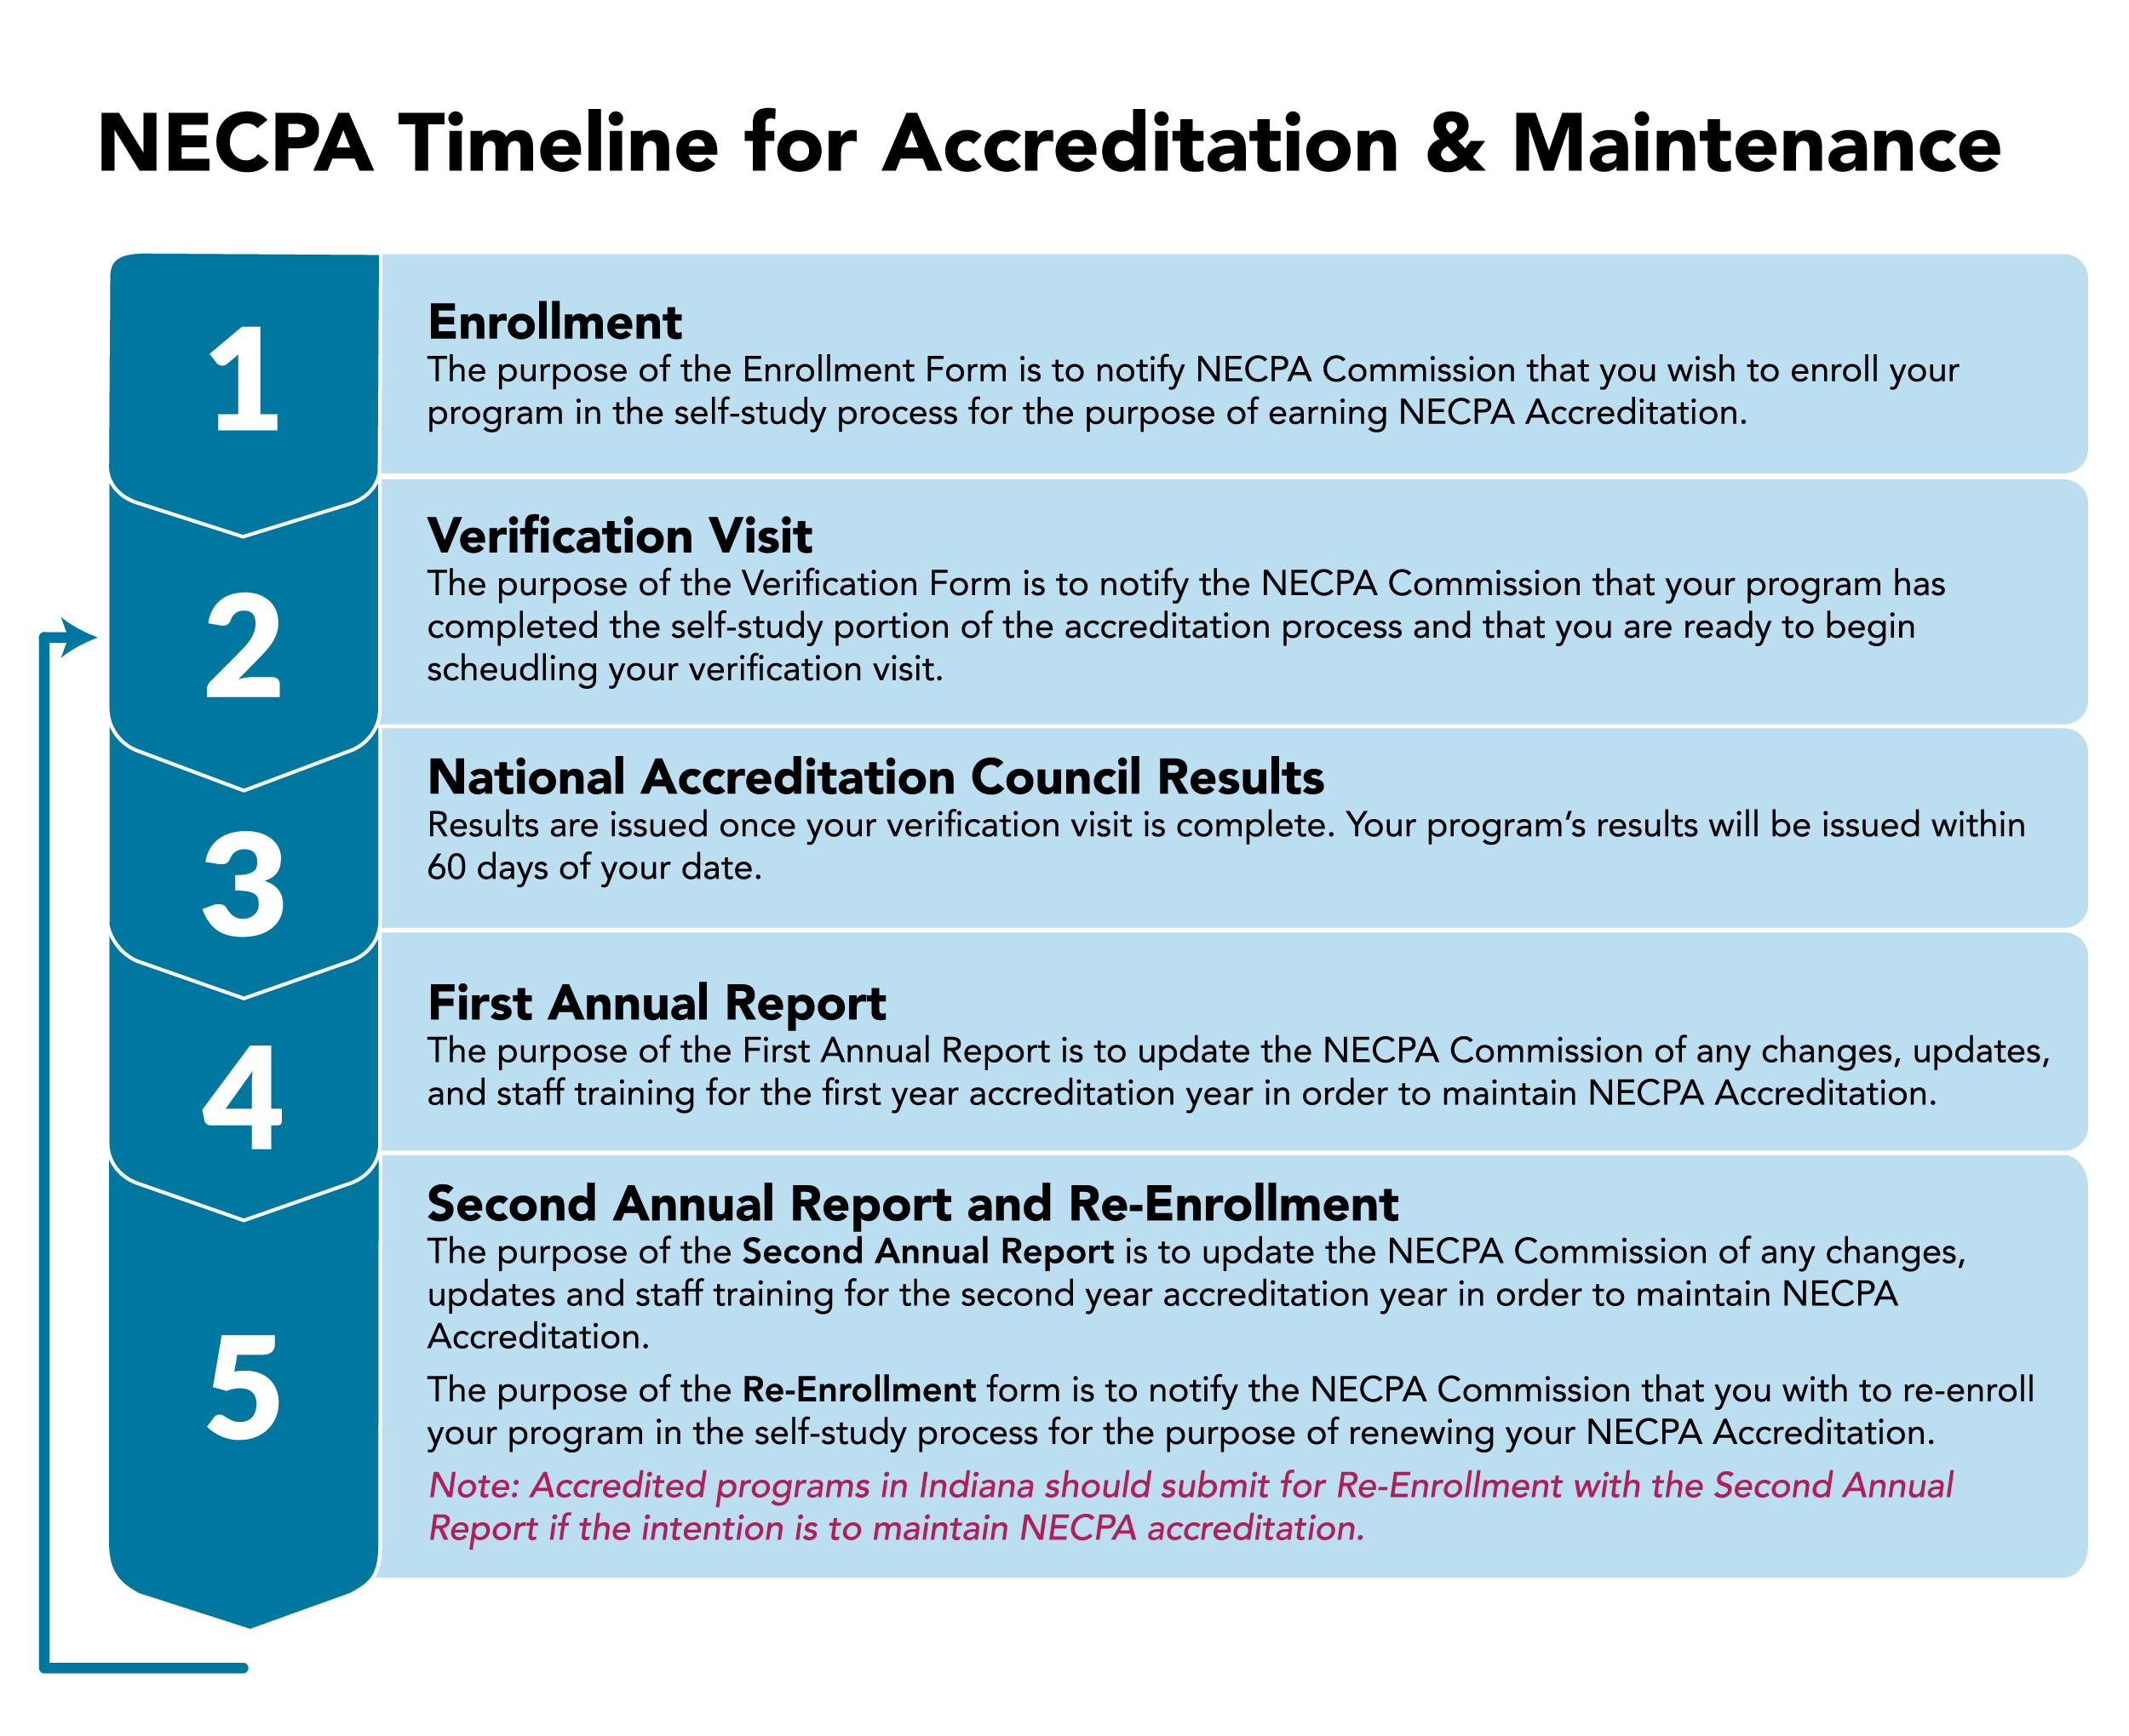 NECPA Timeline for Accreditation & Maintenance